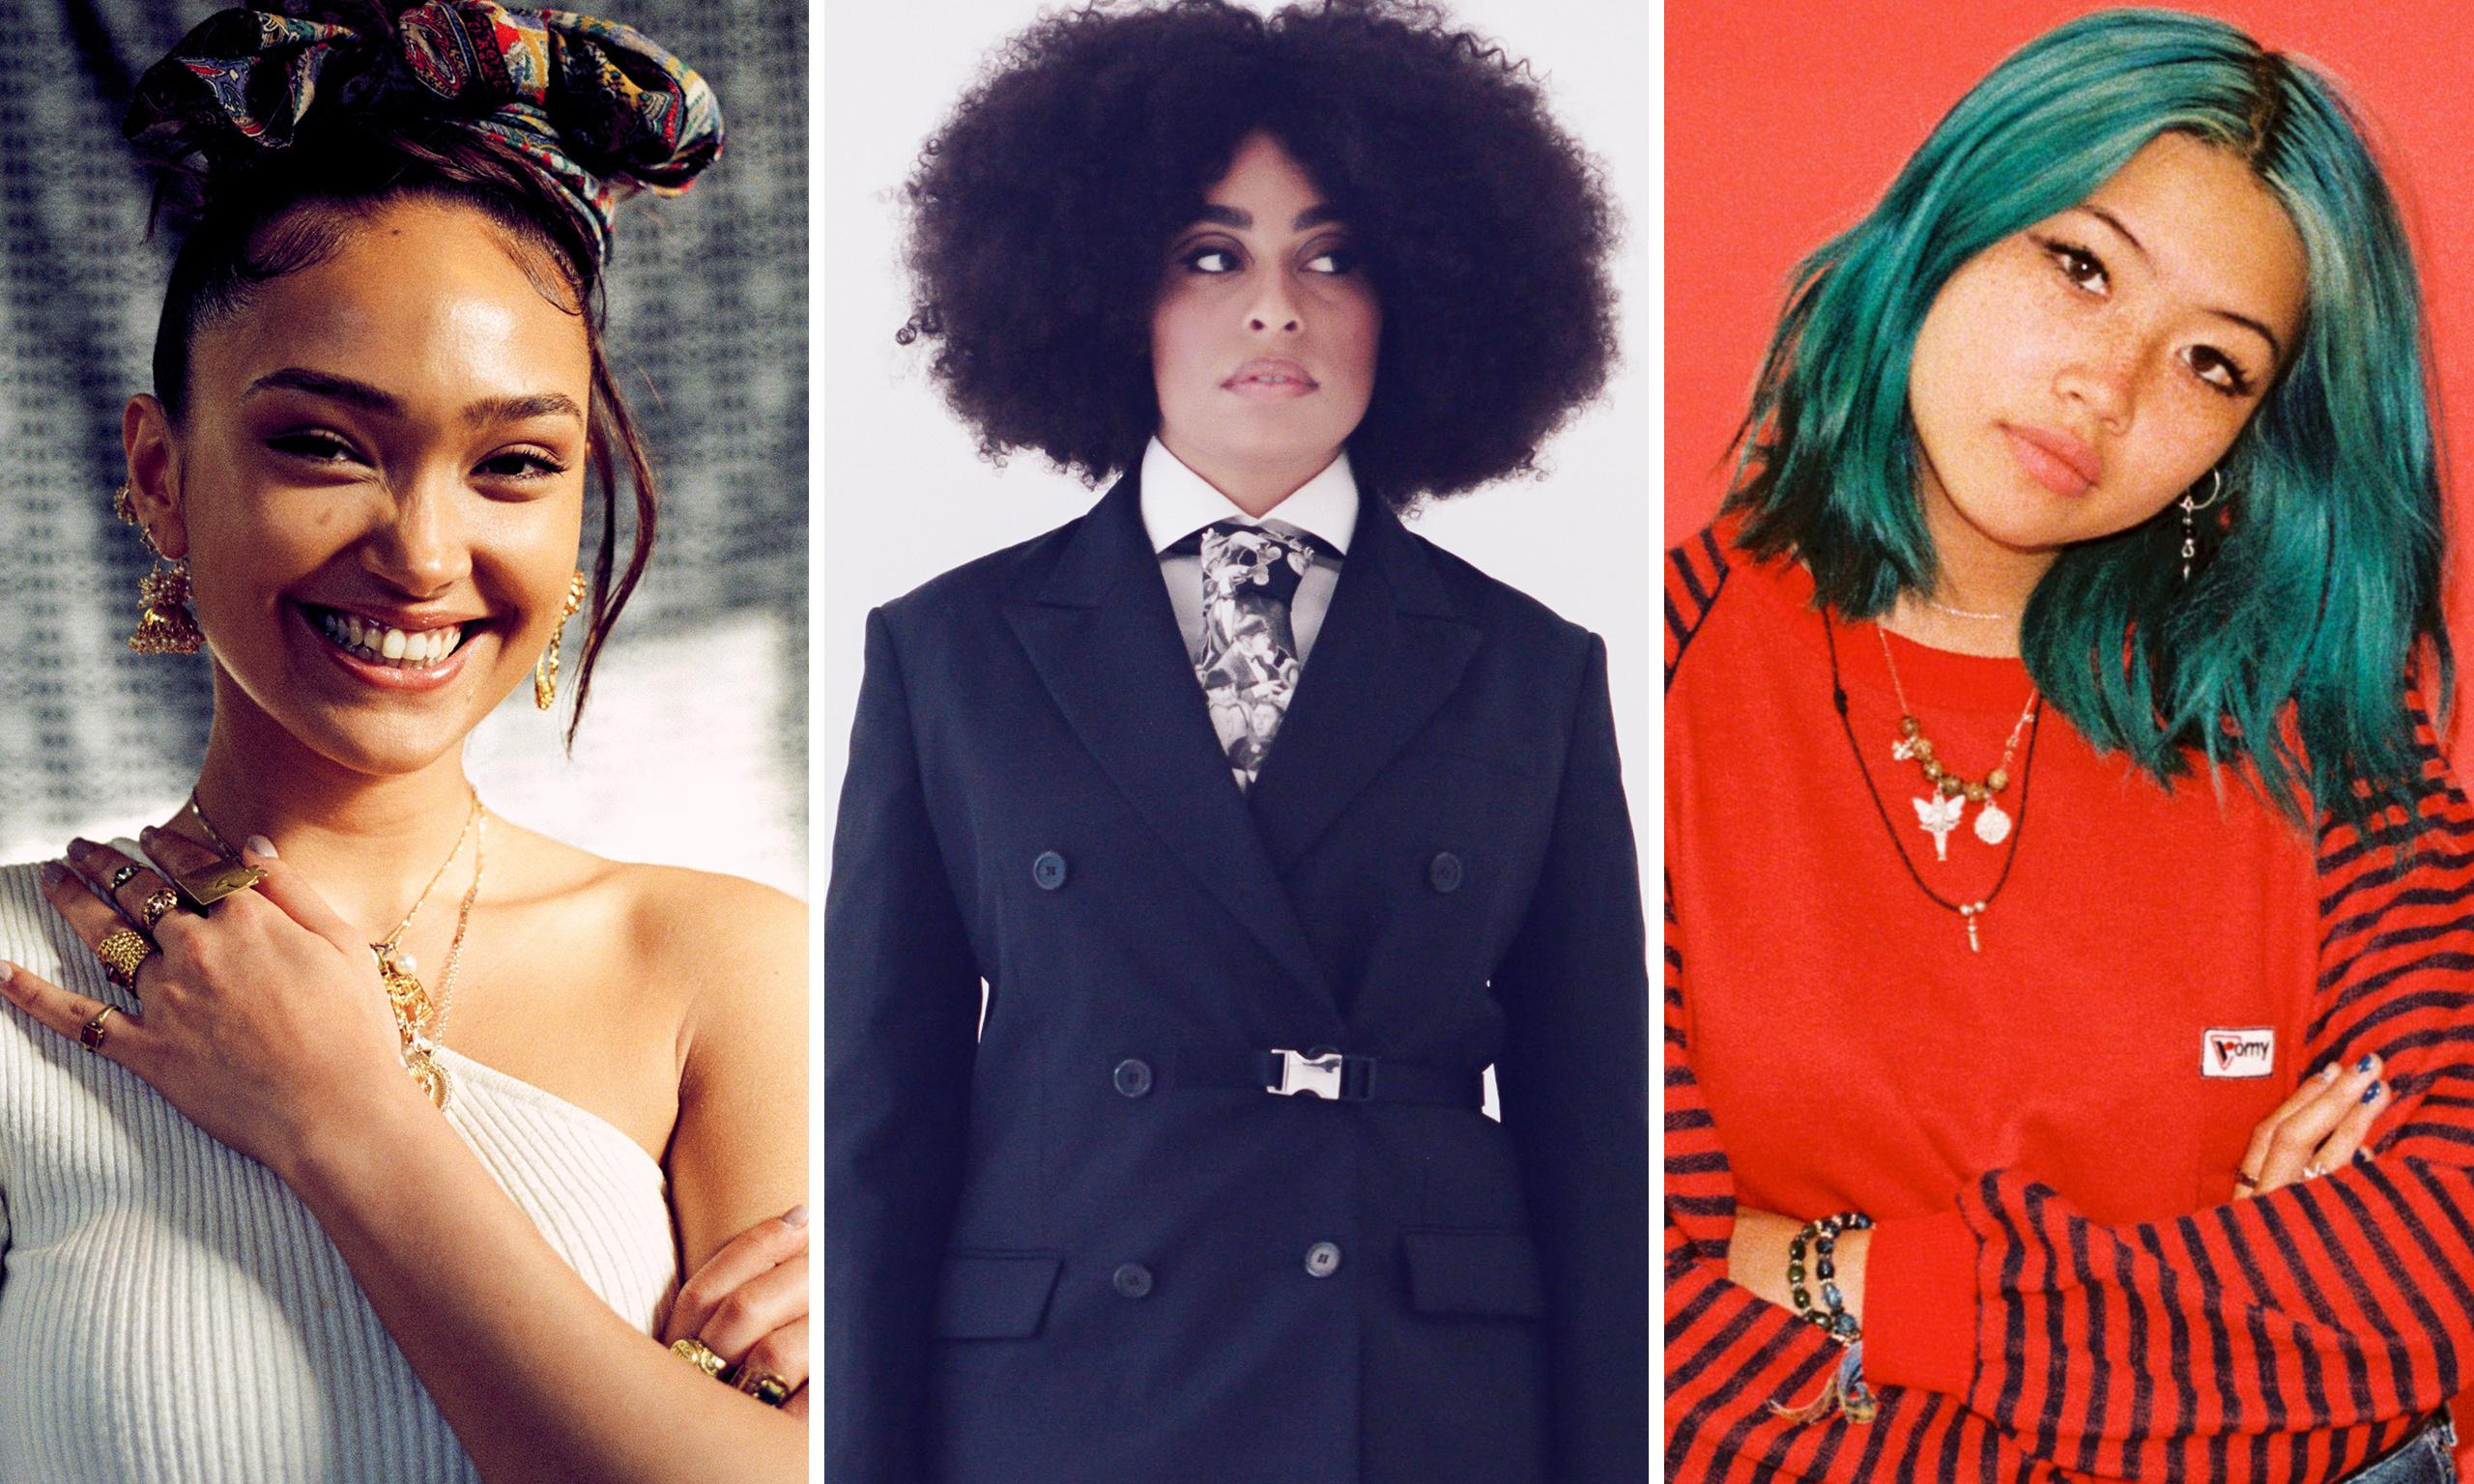 Celeste, Beabadoobee and Joy Crookes nominated for Brits rising star award